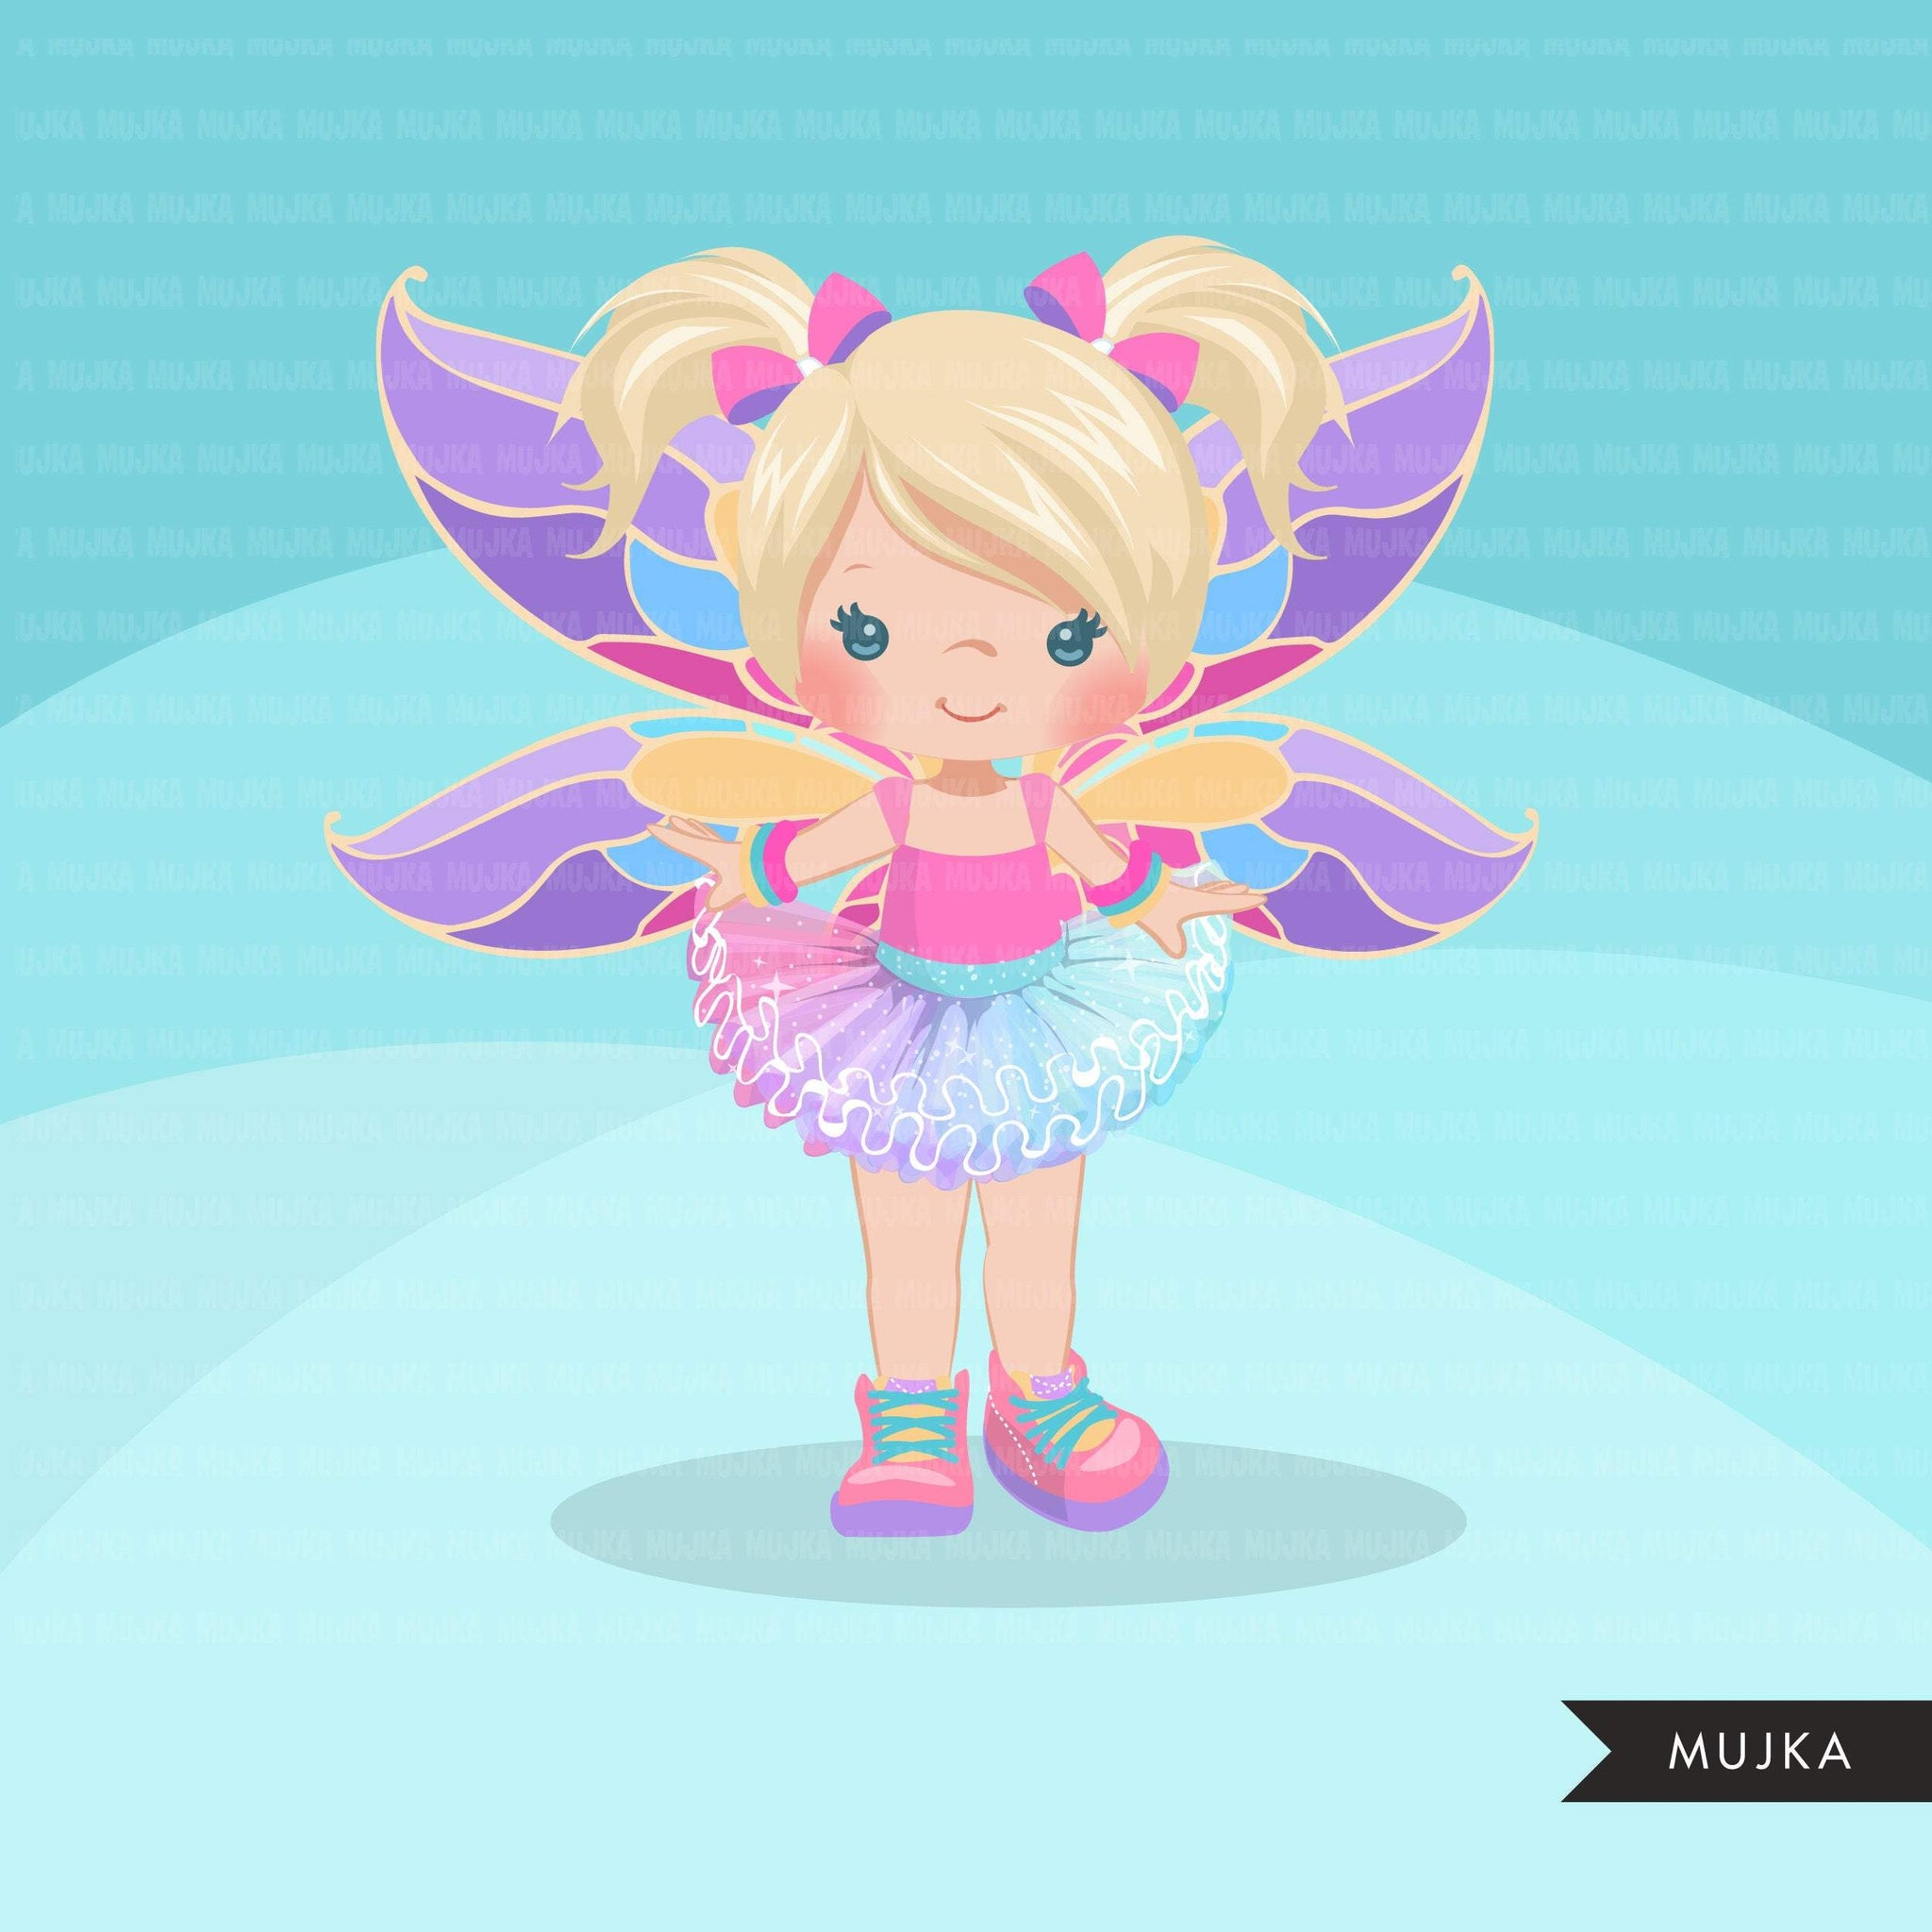 Butterfly tutu clipart, butterfly wings girl with pastel tutu graphics, summer, spring